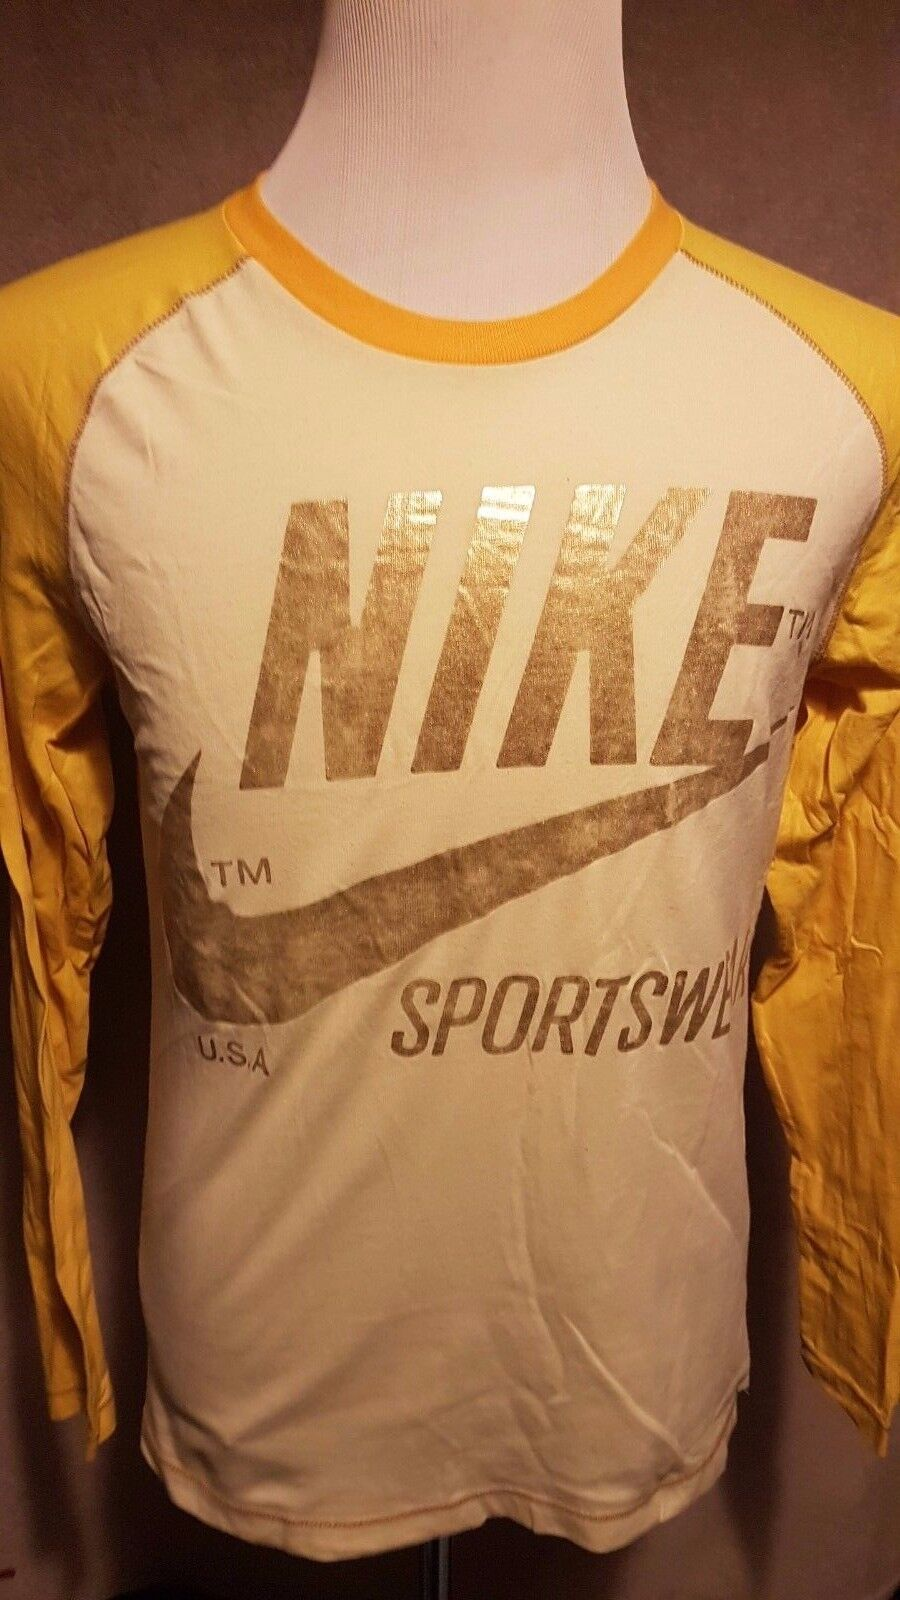 NIKE NIKE NIKE Limited Issue No. SW-78 Man's Long Sleeve Top Größe  S M VERY GOOD Condition       Beliebte Empfehlung  375570